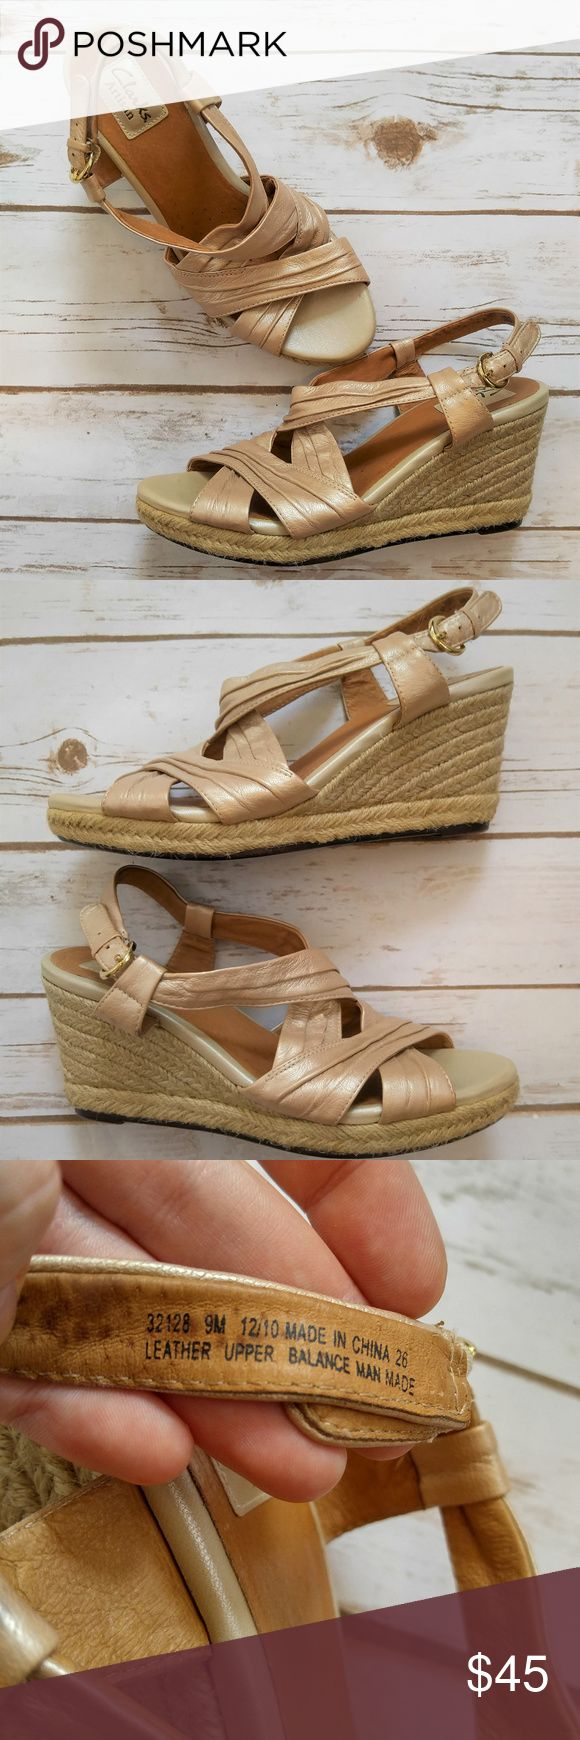 Clarks Artisan Rose Gold Nude Espadrille Heels Clarks Artisan Rose Gold Nude Espadrille Heels Size 9 in like new condition. Please feel free to ask any questions or bundle with other listings in my closet for a custom discount on your order. I ship the same day as long as the order is placed before 11:00 AM Central time. If you would like to be notified about price drops remember to 'like' the item to bookmark it! Thank you for checking out my closet and happy poshing! Clarks Shoes…